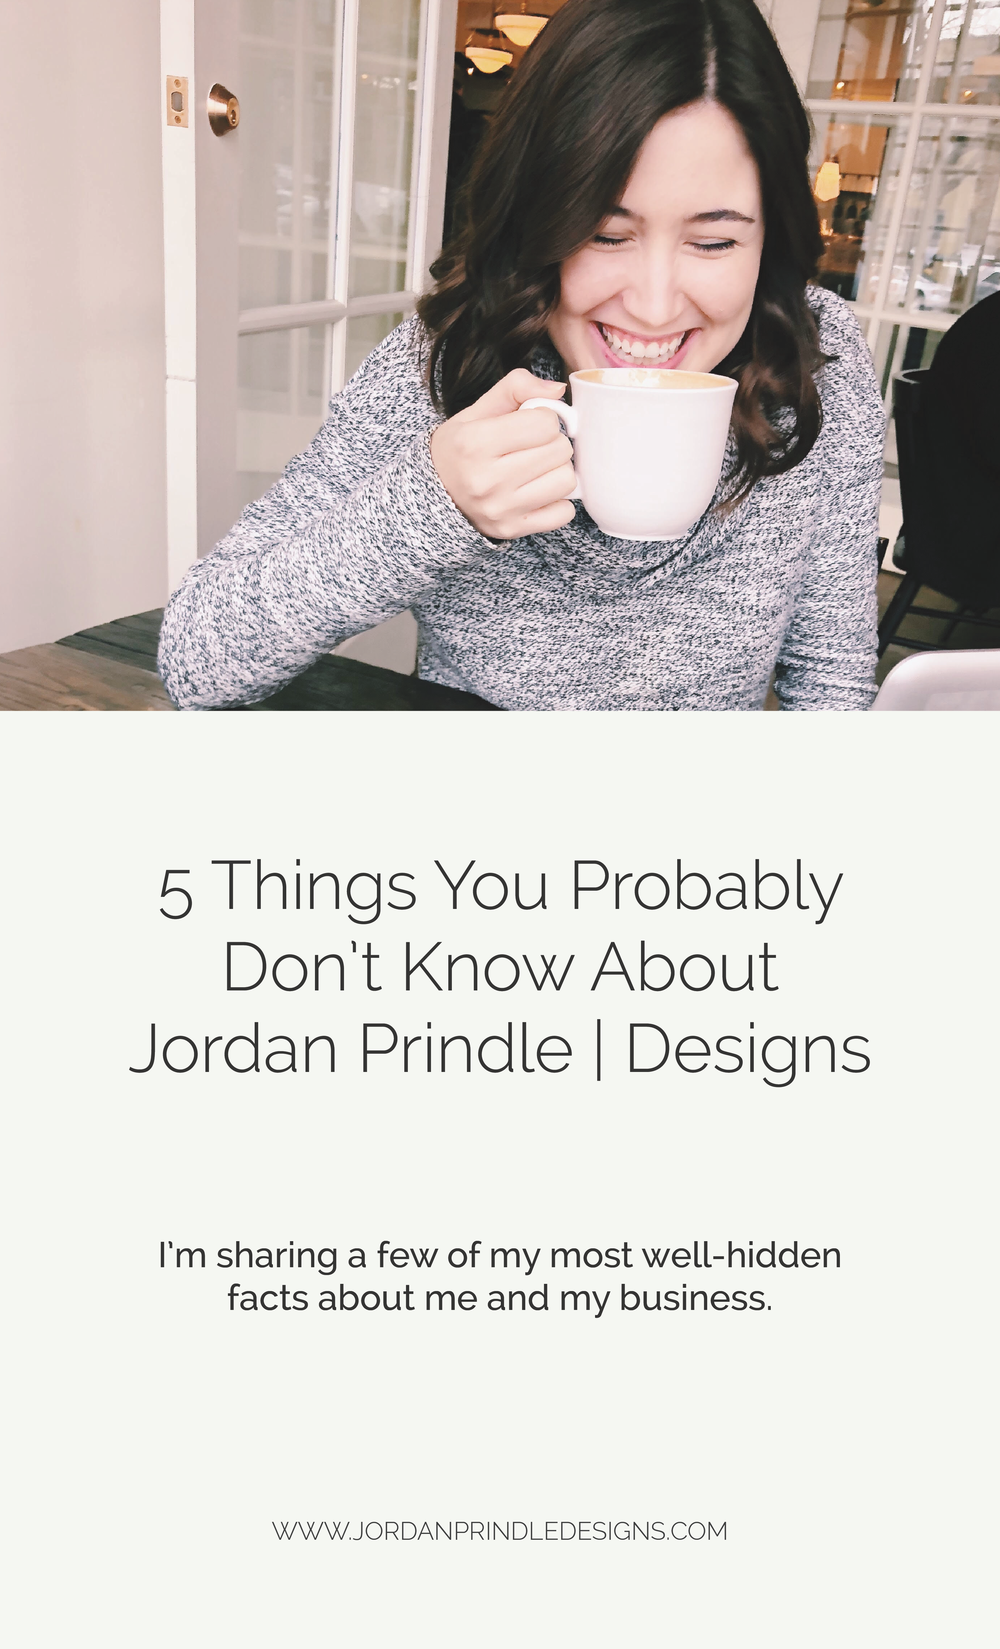 5 Things You Probably Don't Know About Jordan Prindle Designs | I'm sharing my most well-hidden facts to give you a look behind the curtain at my brand and wed design business. Keep reading at www.jordanprindledesigns.com #branddesign #businesstips #fridayintroductions